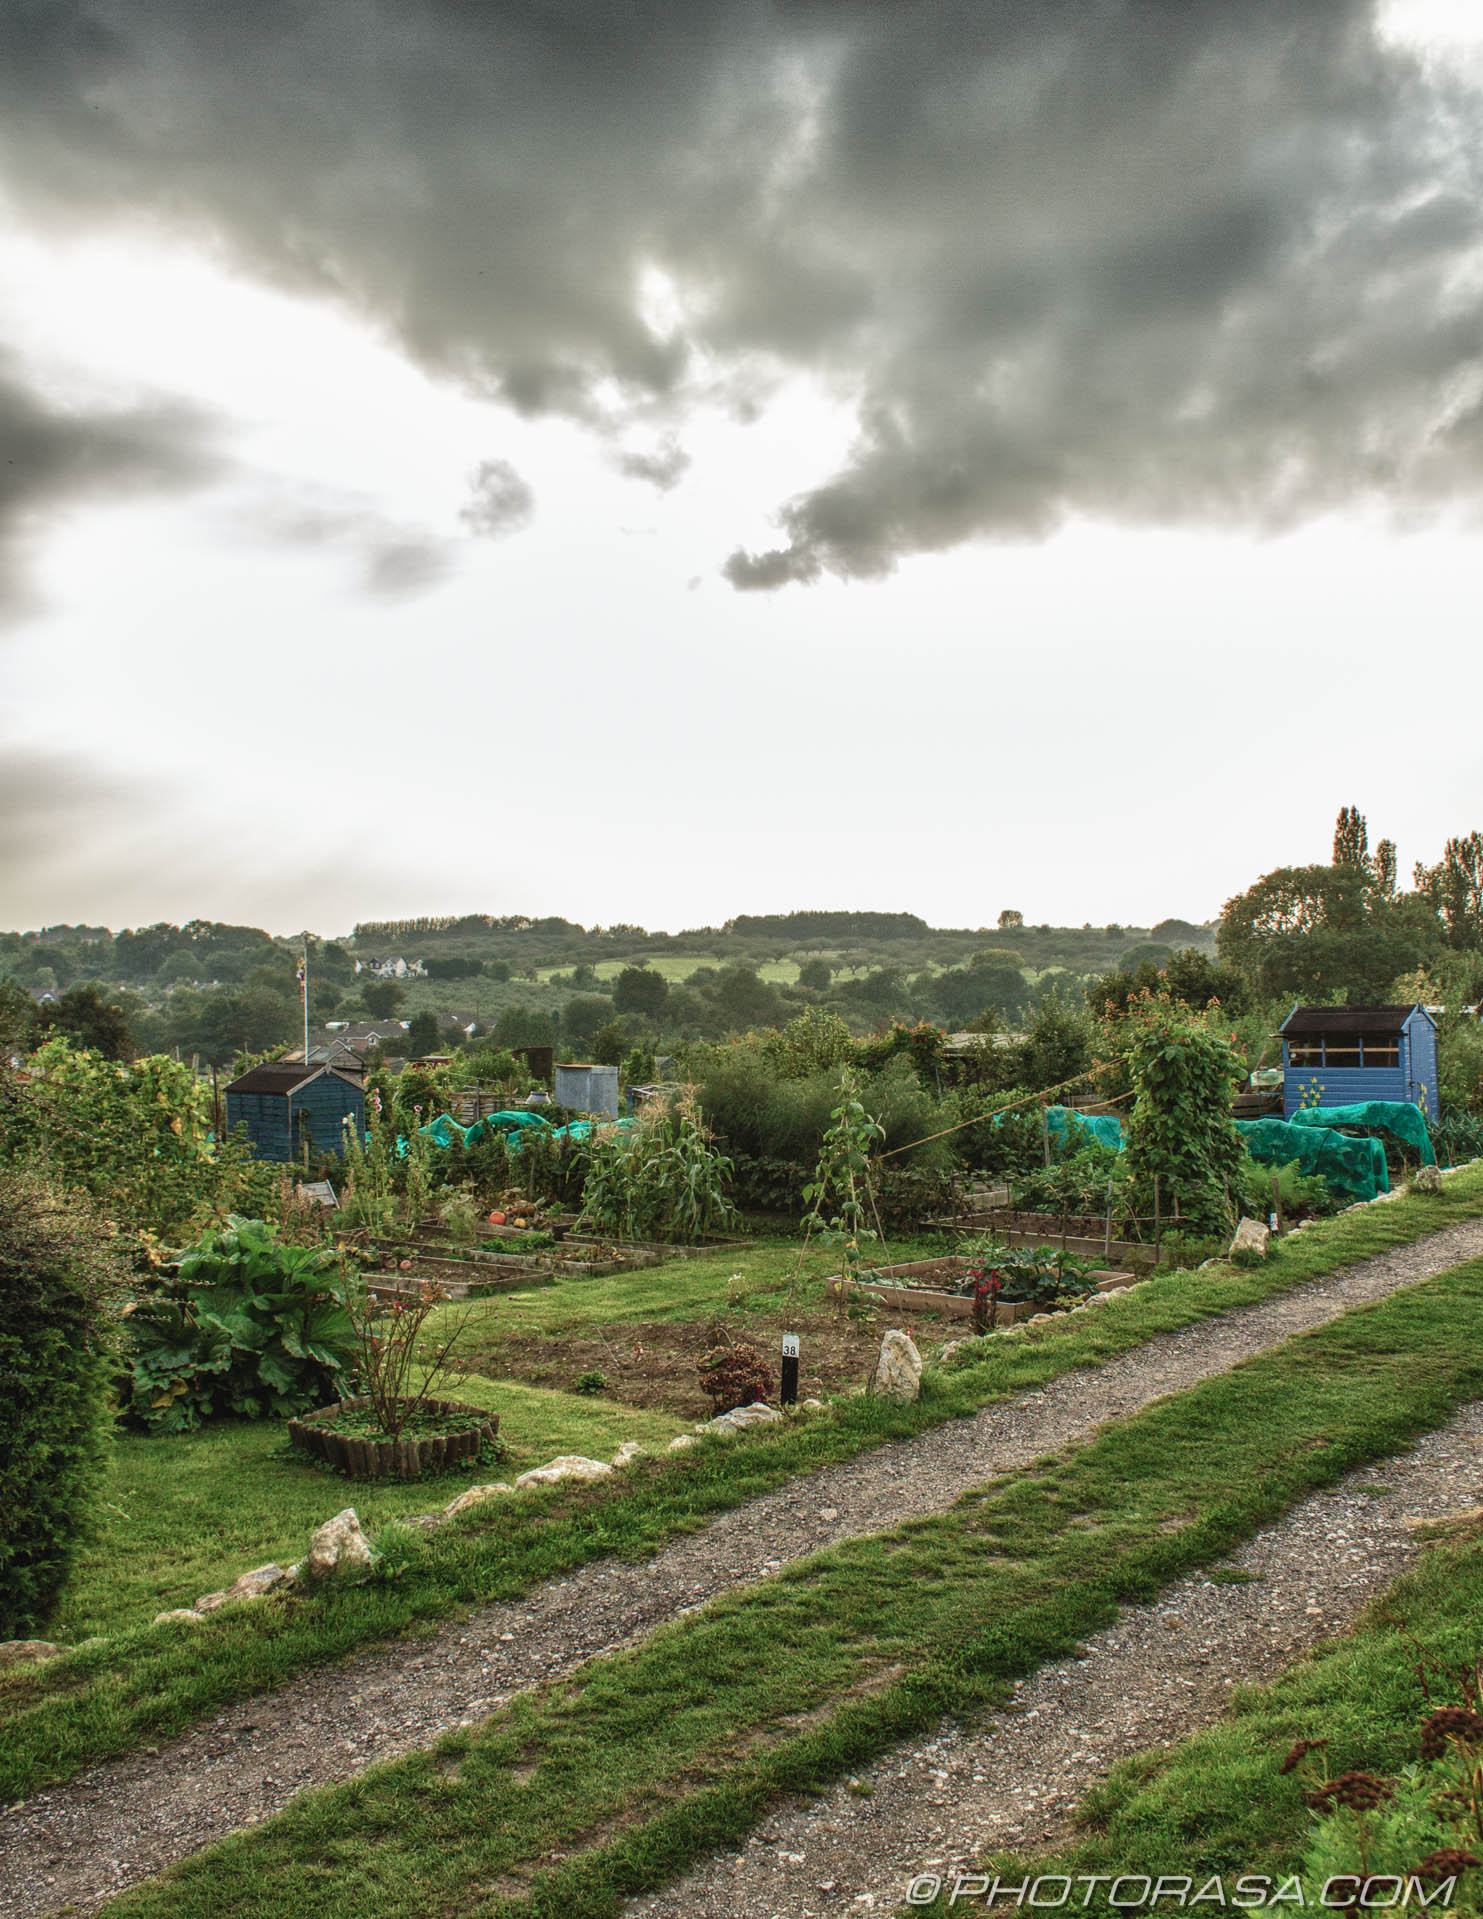 https://photorasa.com/loose-village/allotment-path-on-a-cloudy-day/